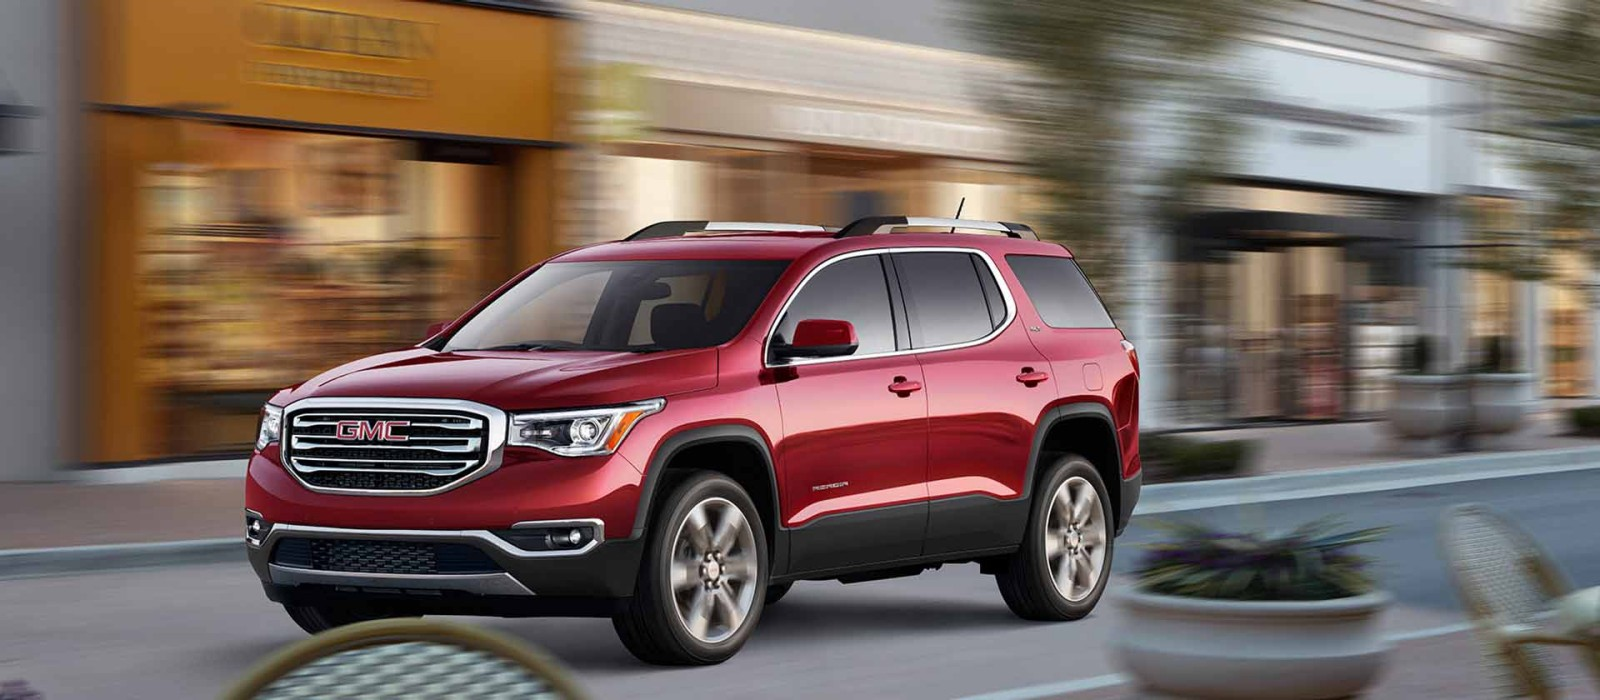 gmc and used dealers welcome des moines to clive new billion in buick vehicle iowa of dealership